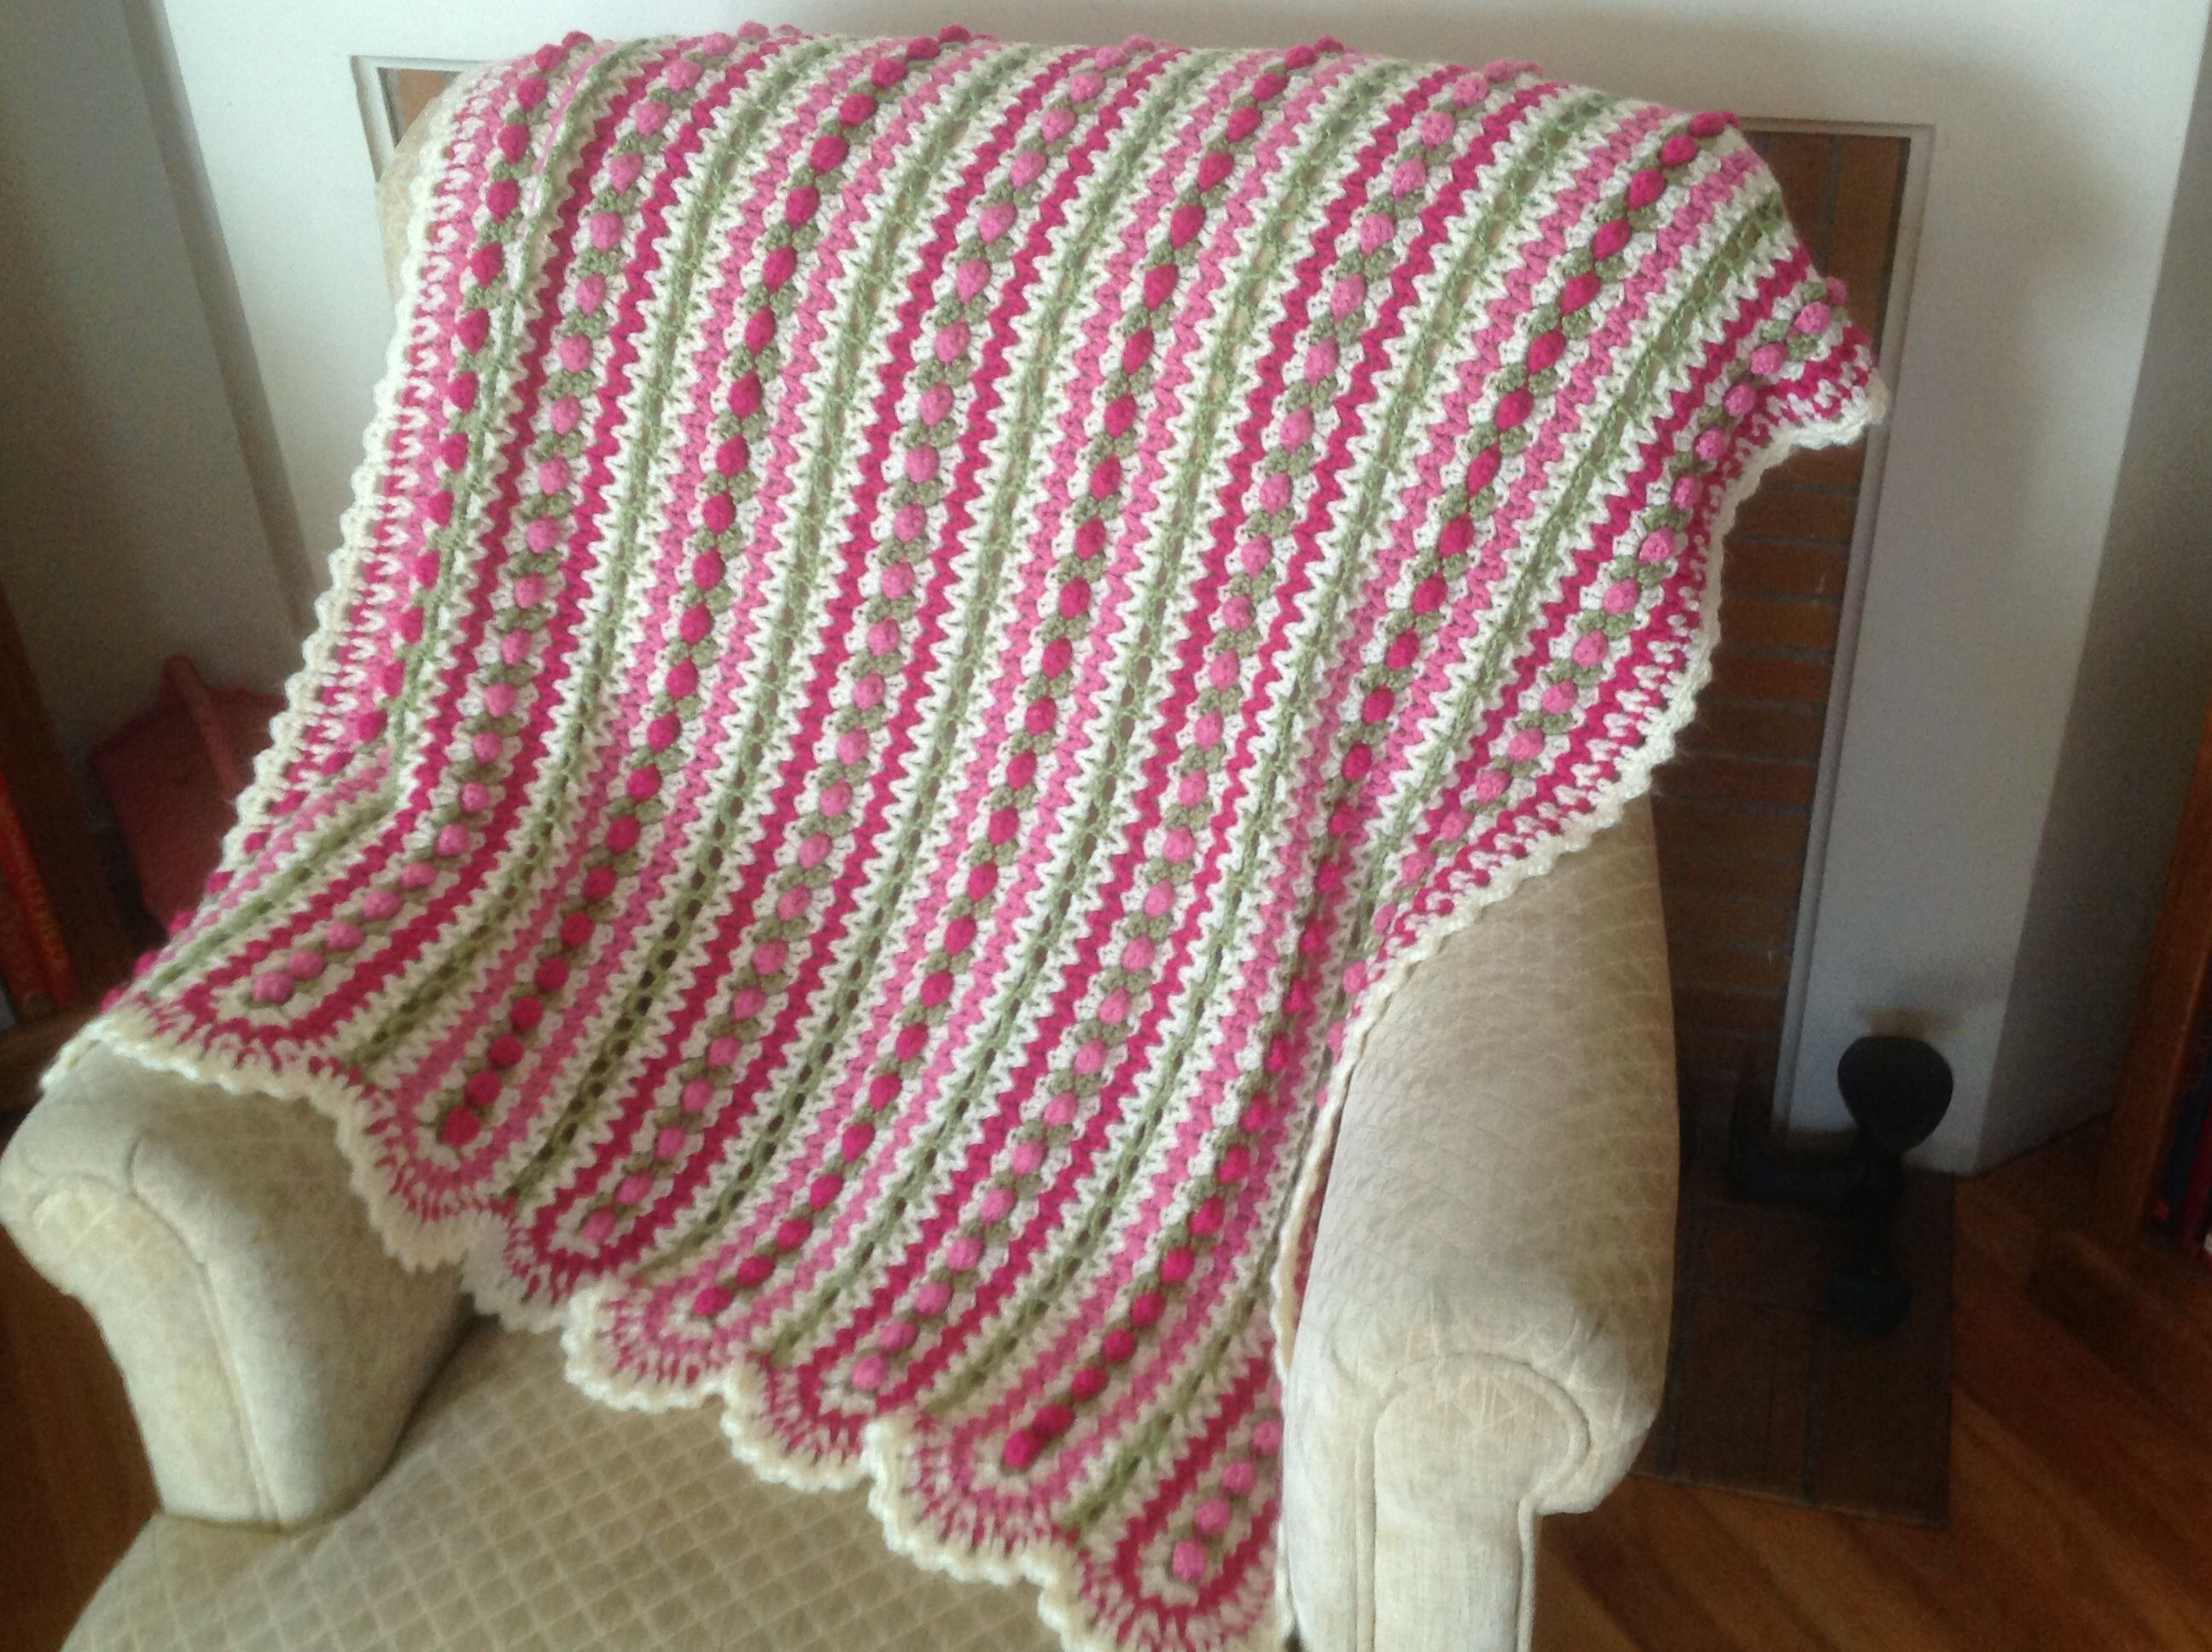 Crochet Patterns Mile A Minute : Mile a minute crochet afghan CROCHET-MILE-A-MINUTE Pinterest